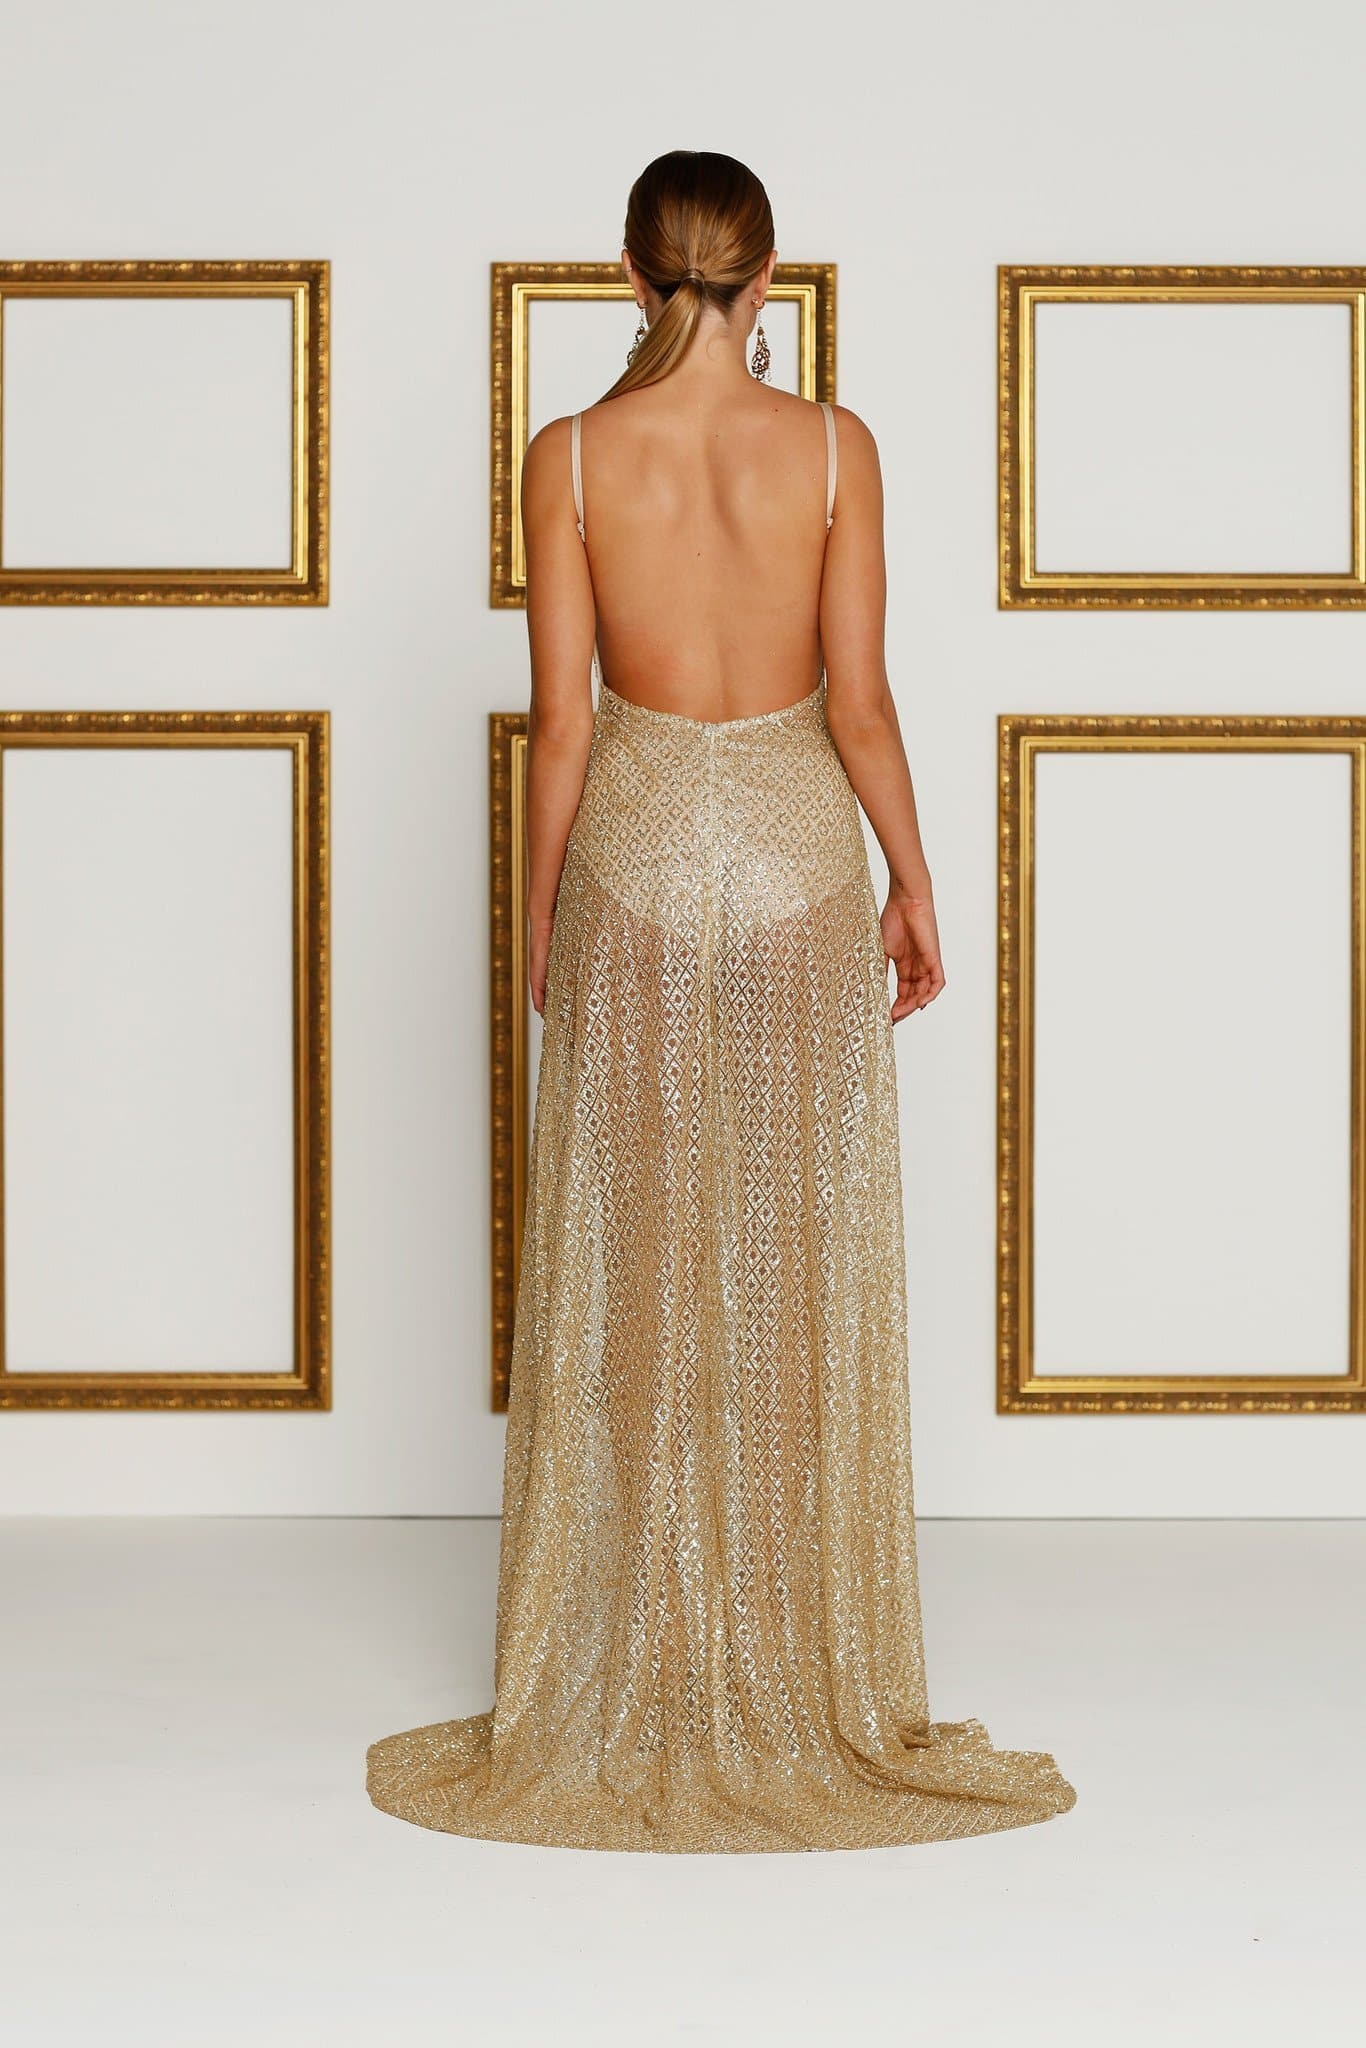 Gold Sheer Sequin Evening Gown Prom Formal Dress Two Sexy Slits Mermaid Train Rozay Luxe